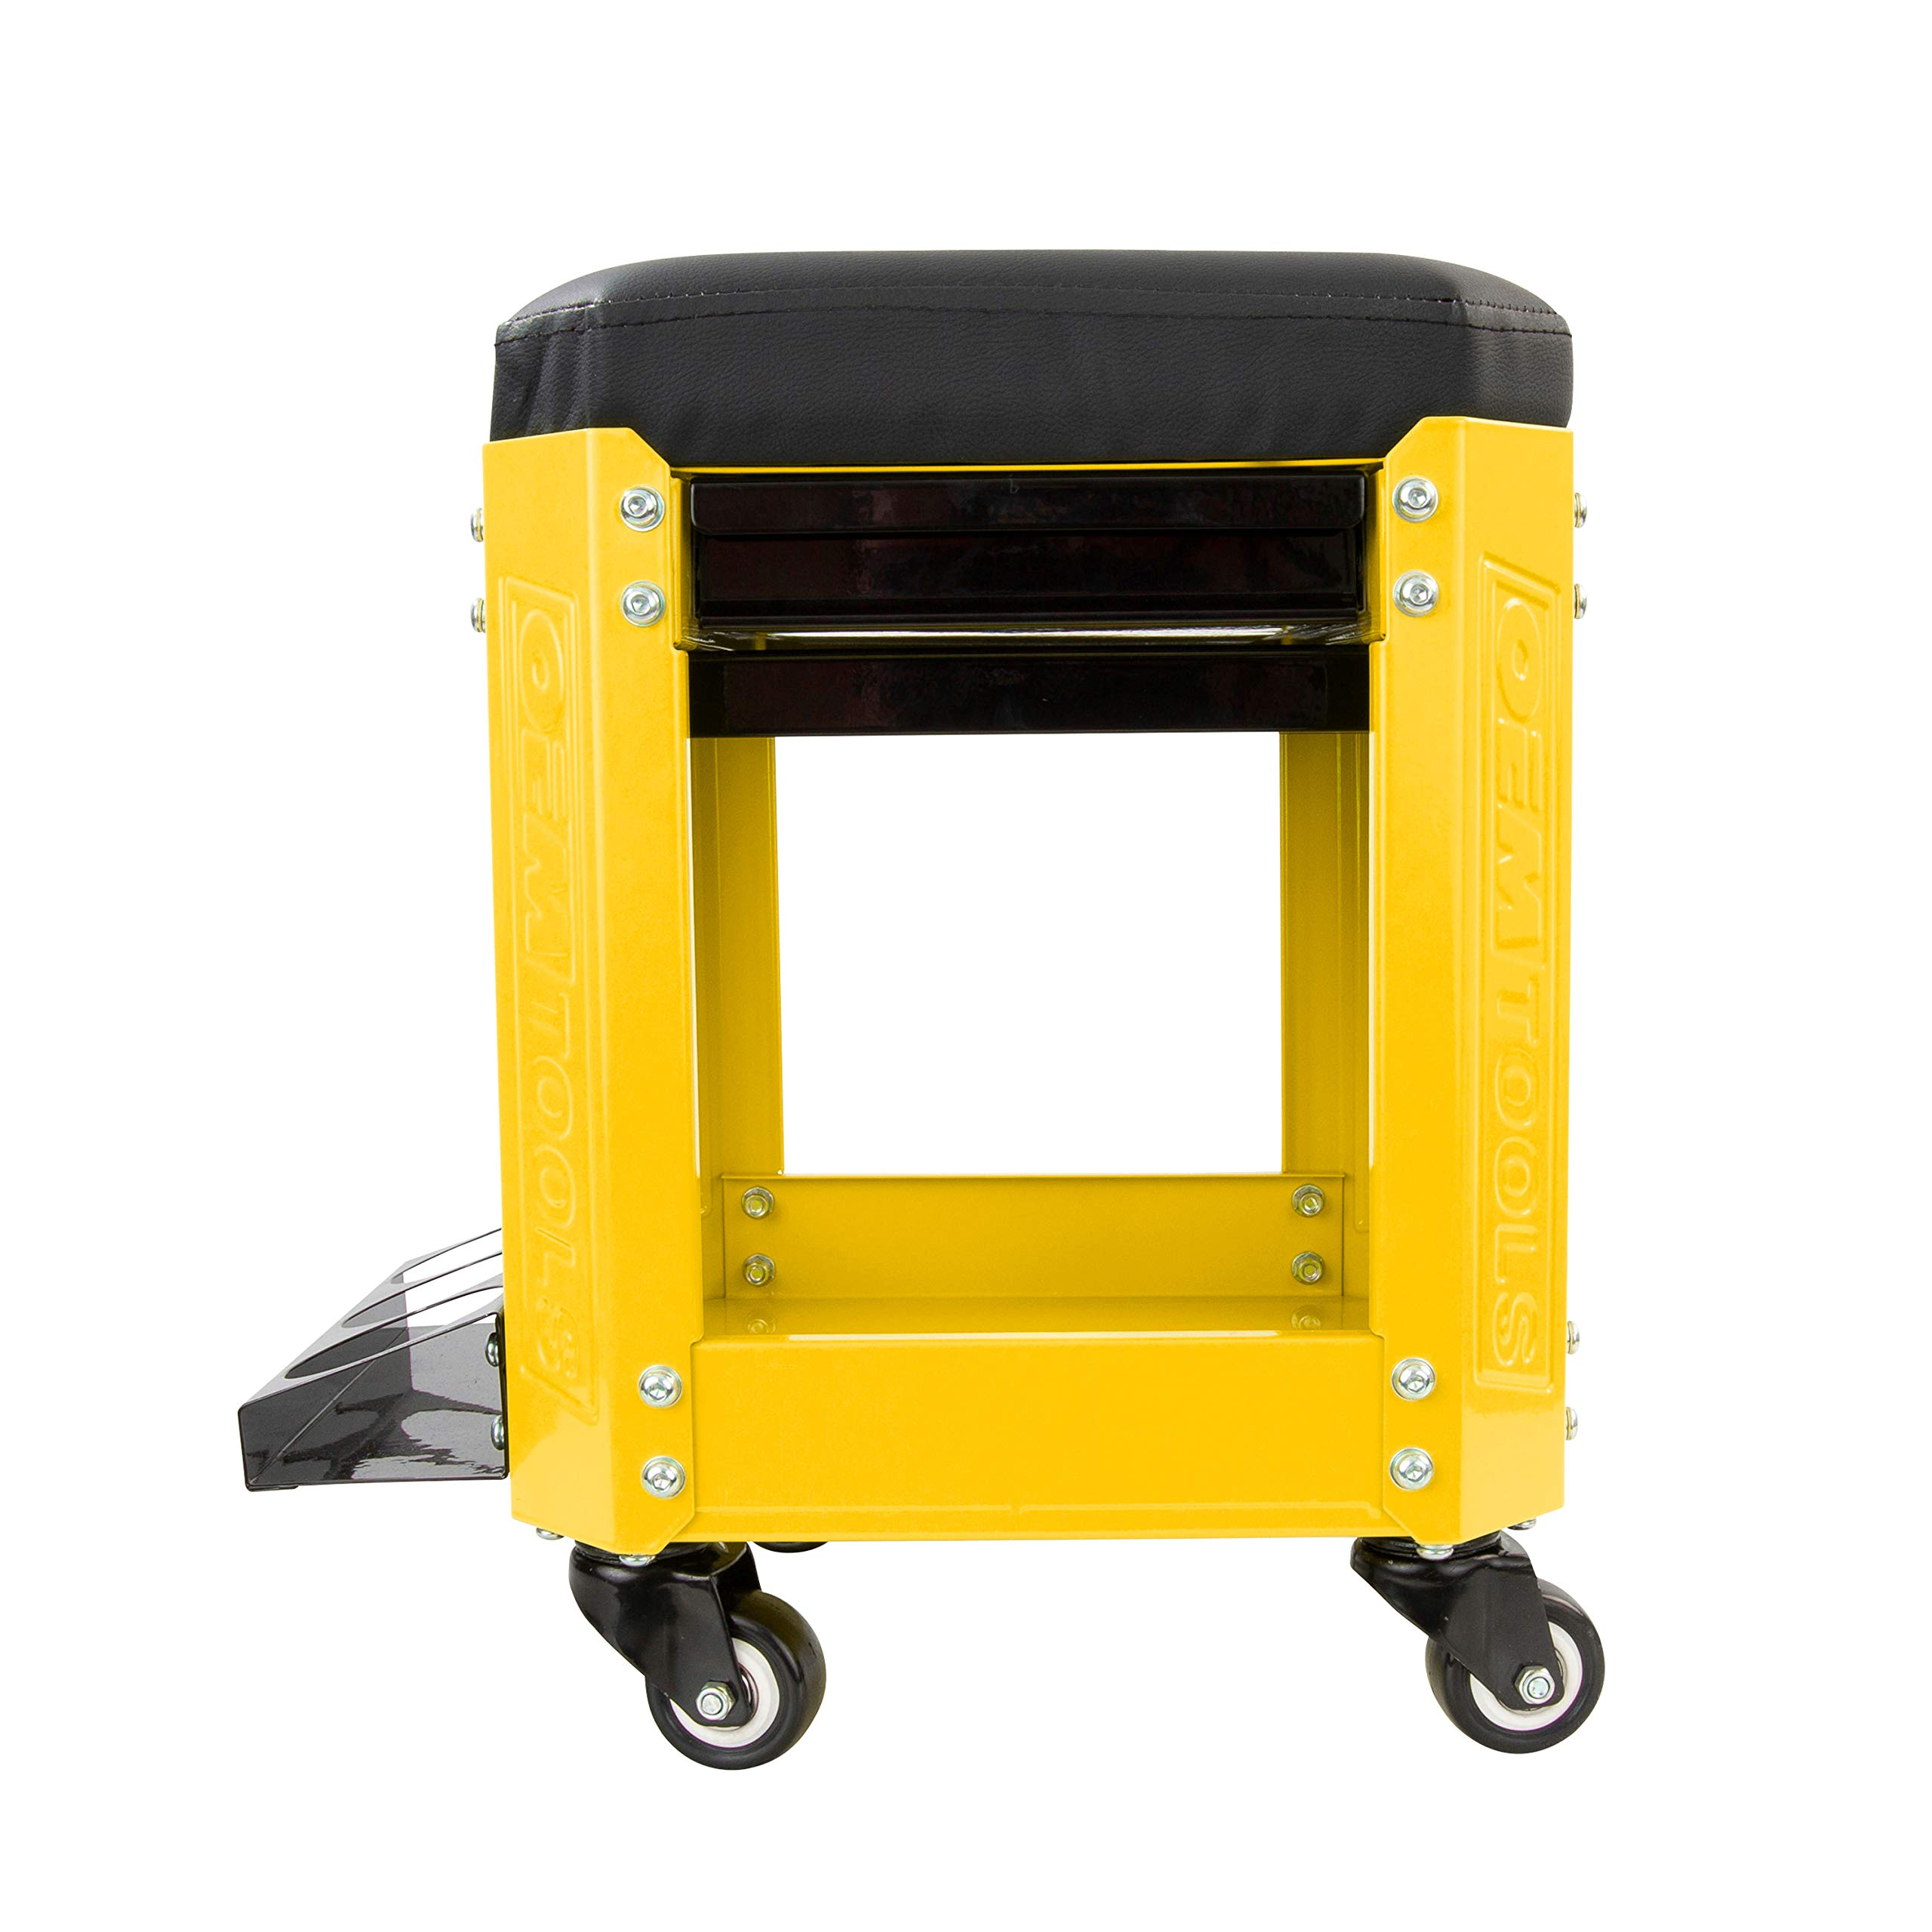 OEMTOOL 24999 Yellow Rolling Workshop Creeper Seat with 2 Tool Storage Drawers Under Seat Parts Storage Can Holders by OEMTOOLS (Image #3)